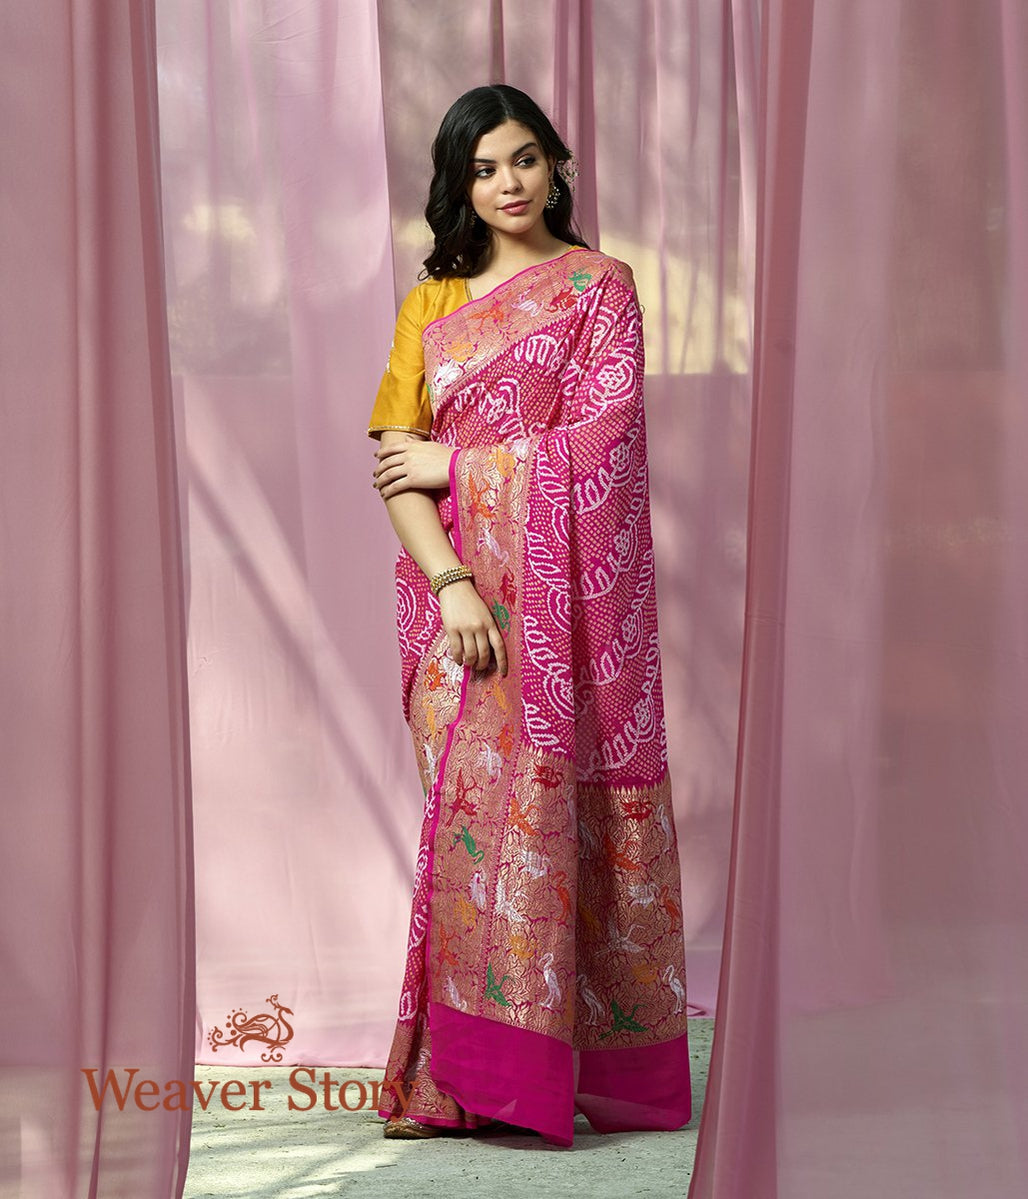 Handwoven Pink Bandhej Saree with Shikargah Border